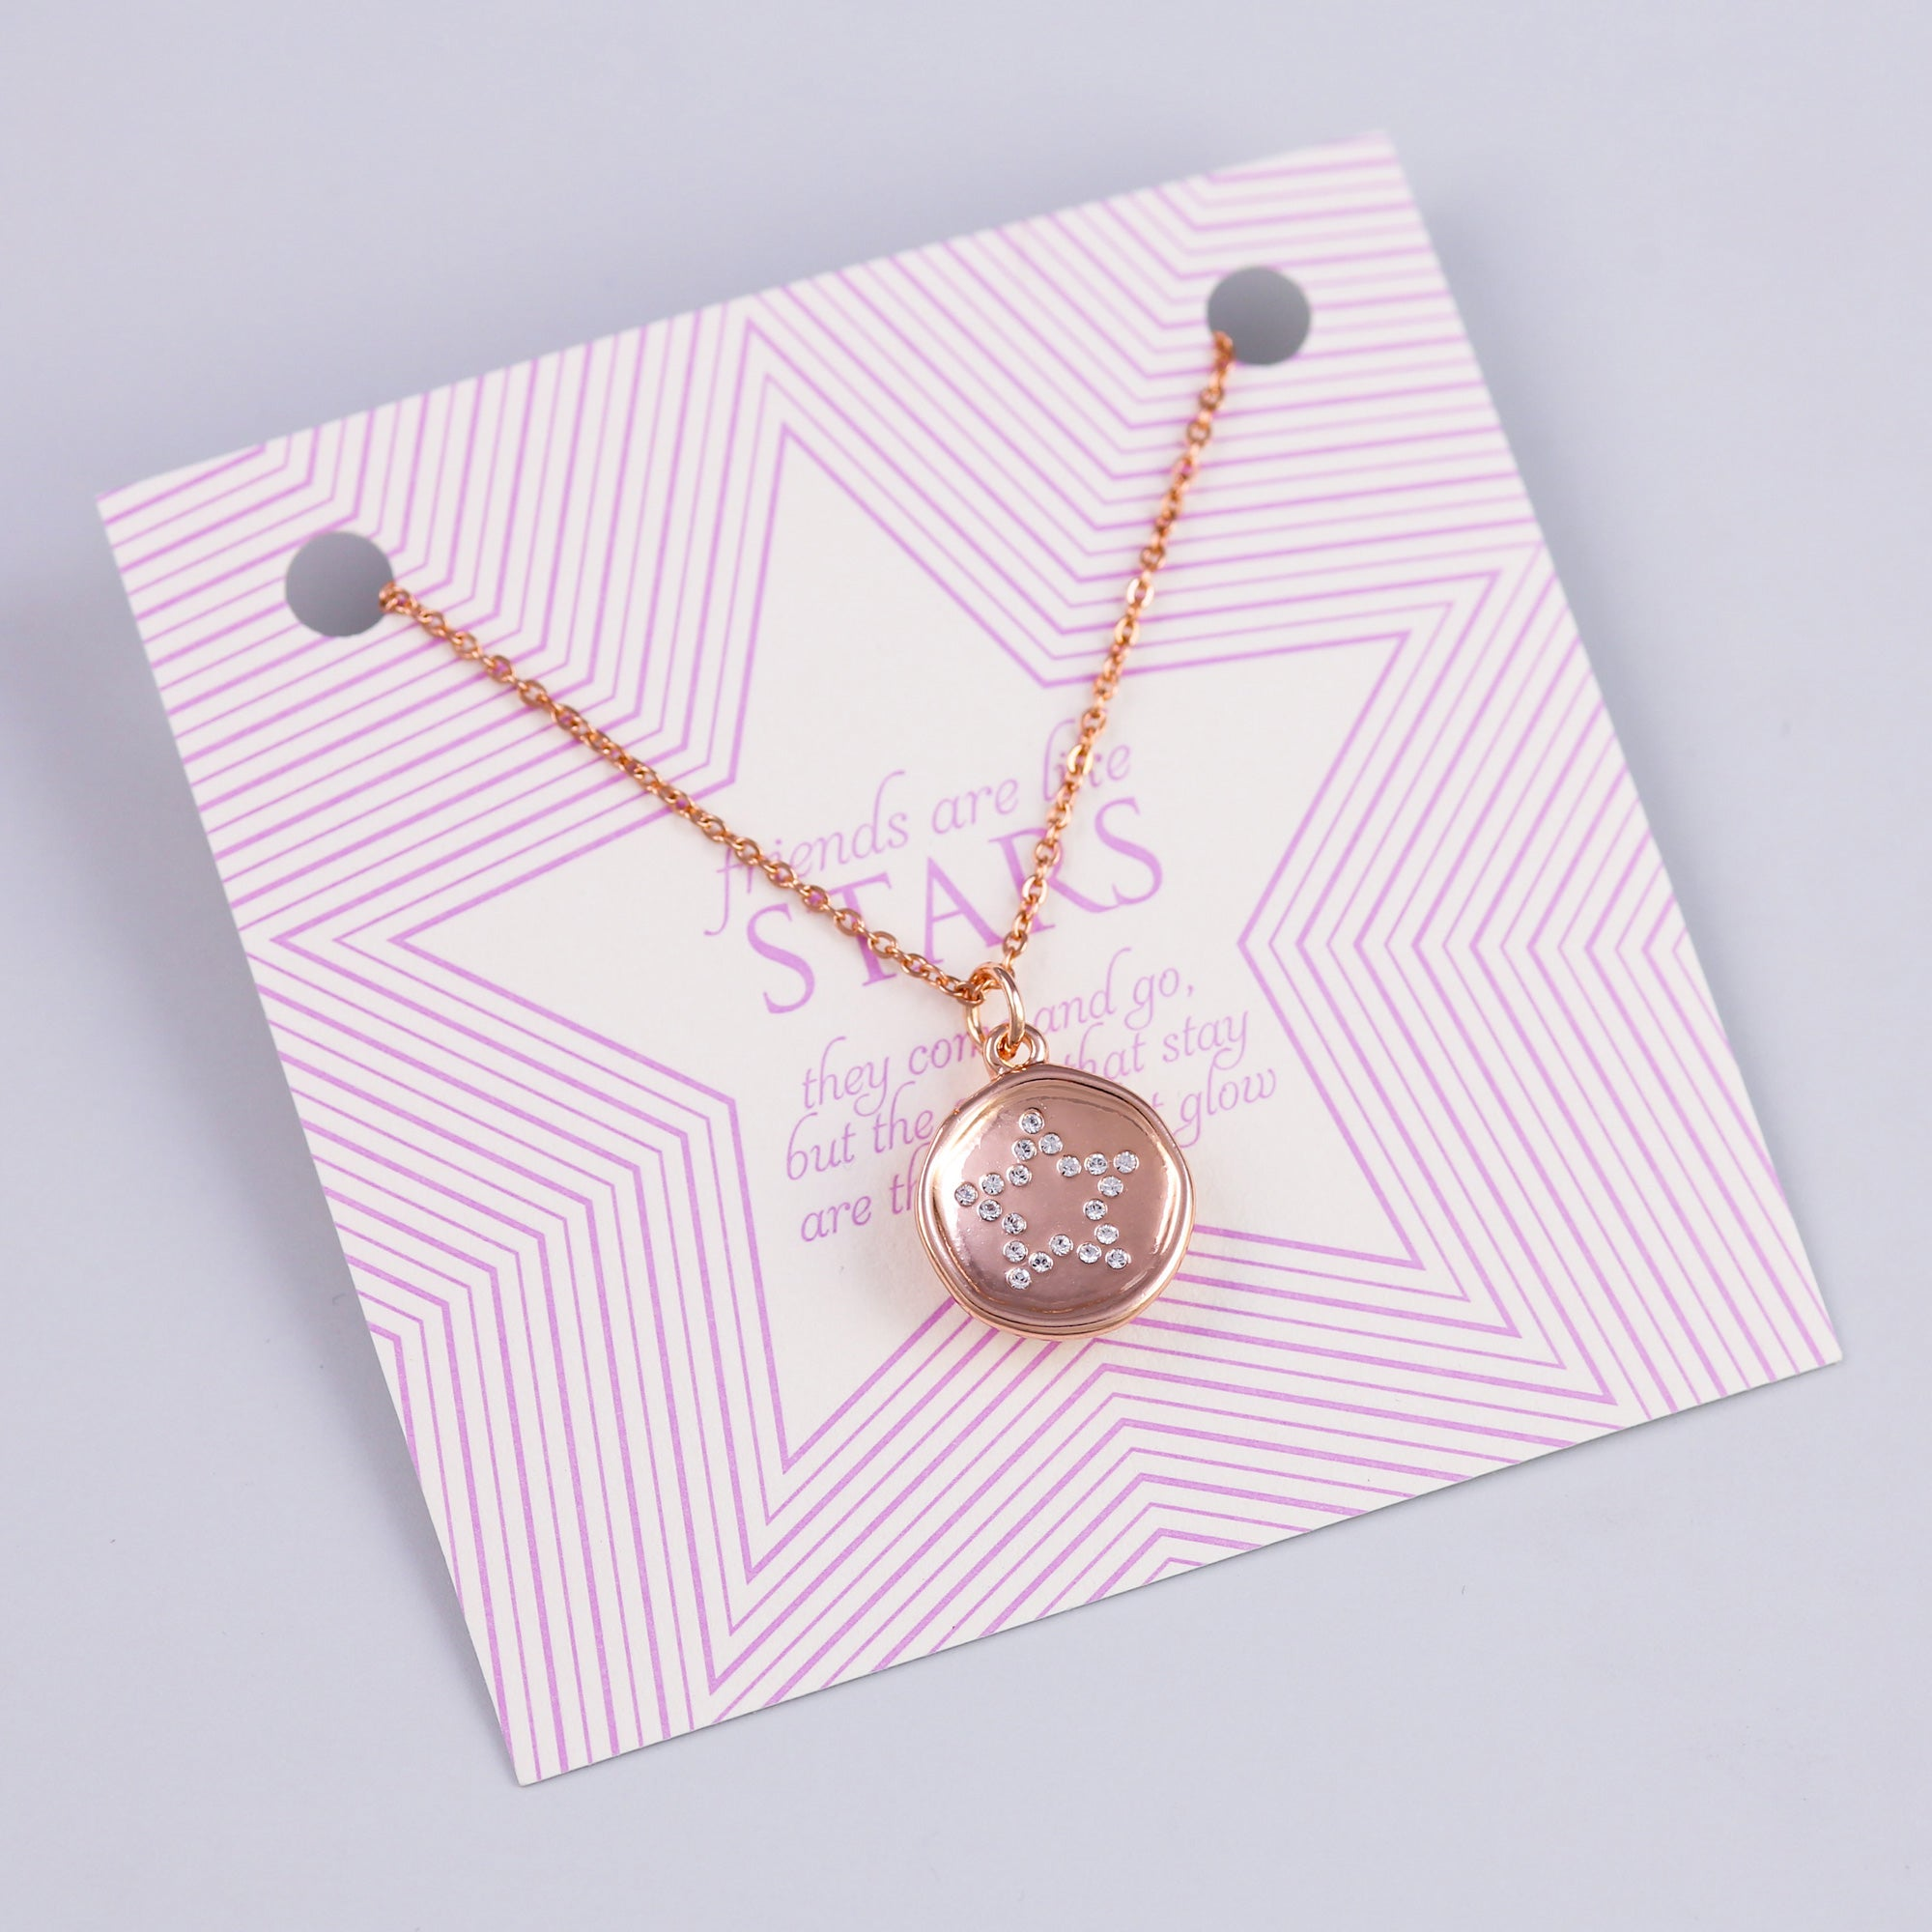 Friends Sentiment Card with Rose Gold Crystal Star Charm